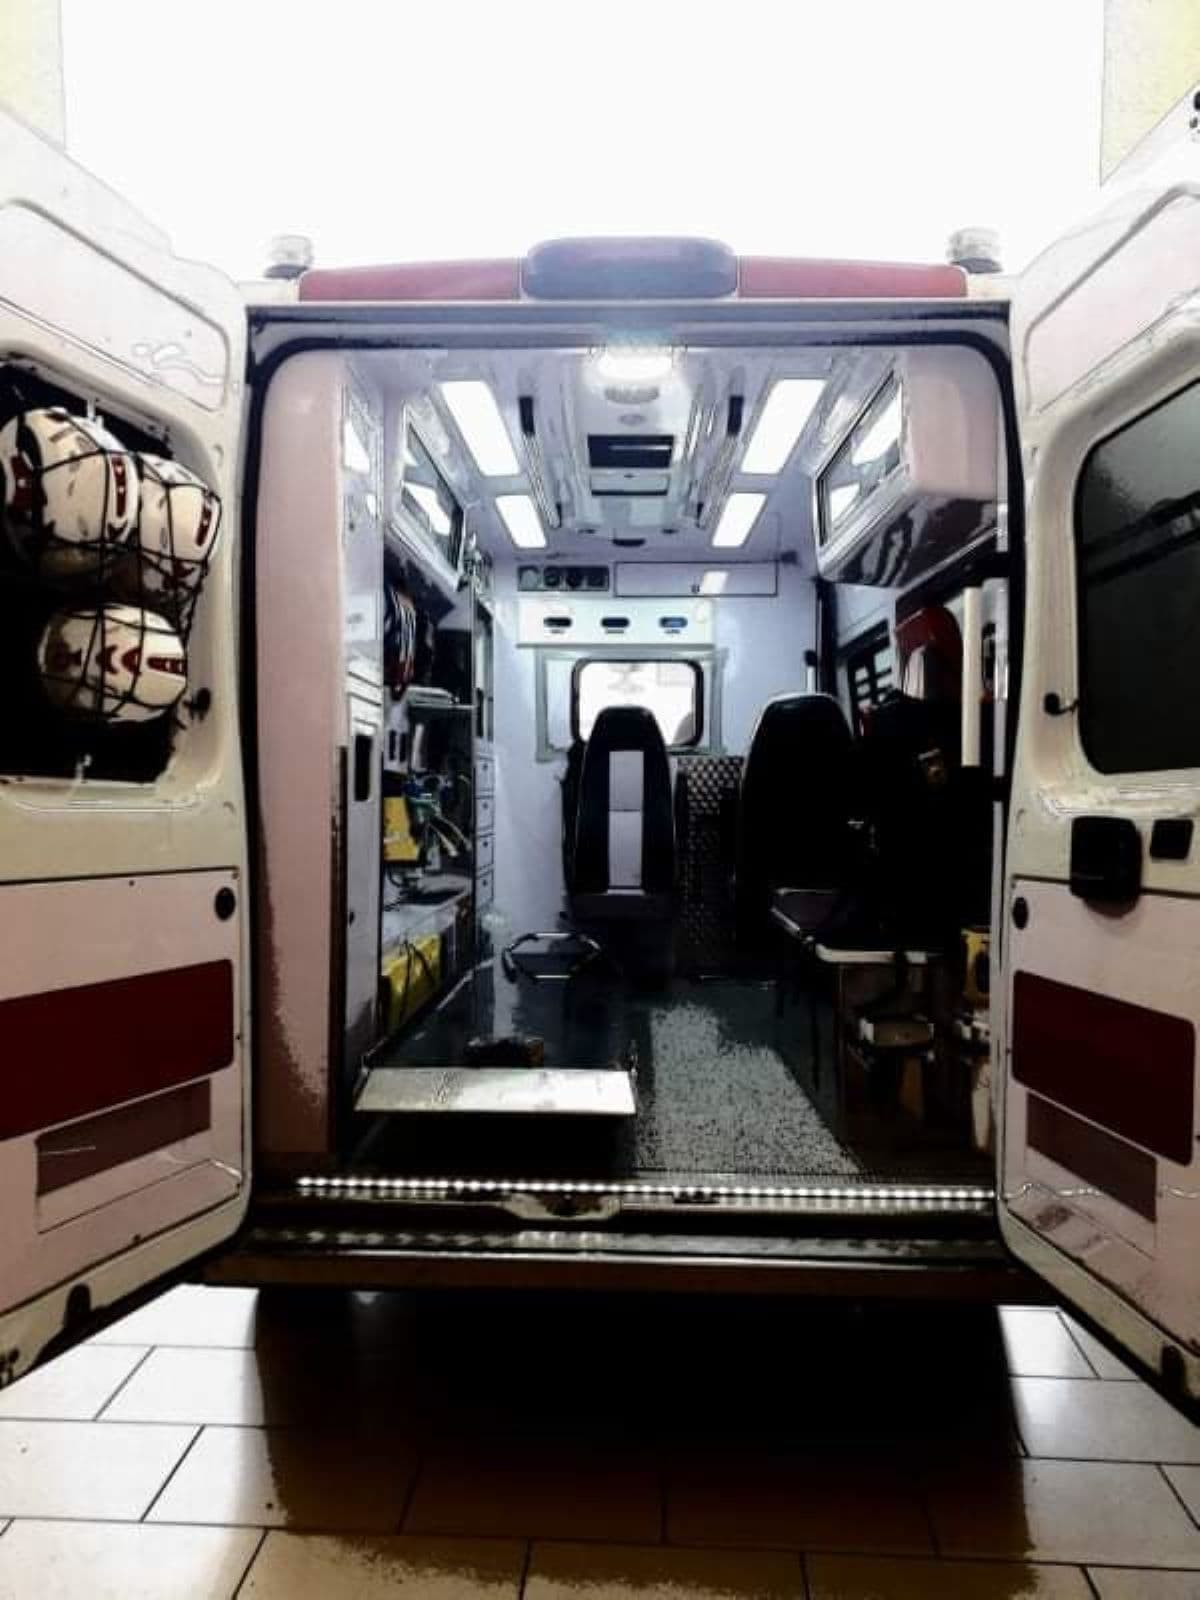 Angera, incidente in piazza Cavour